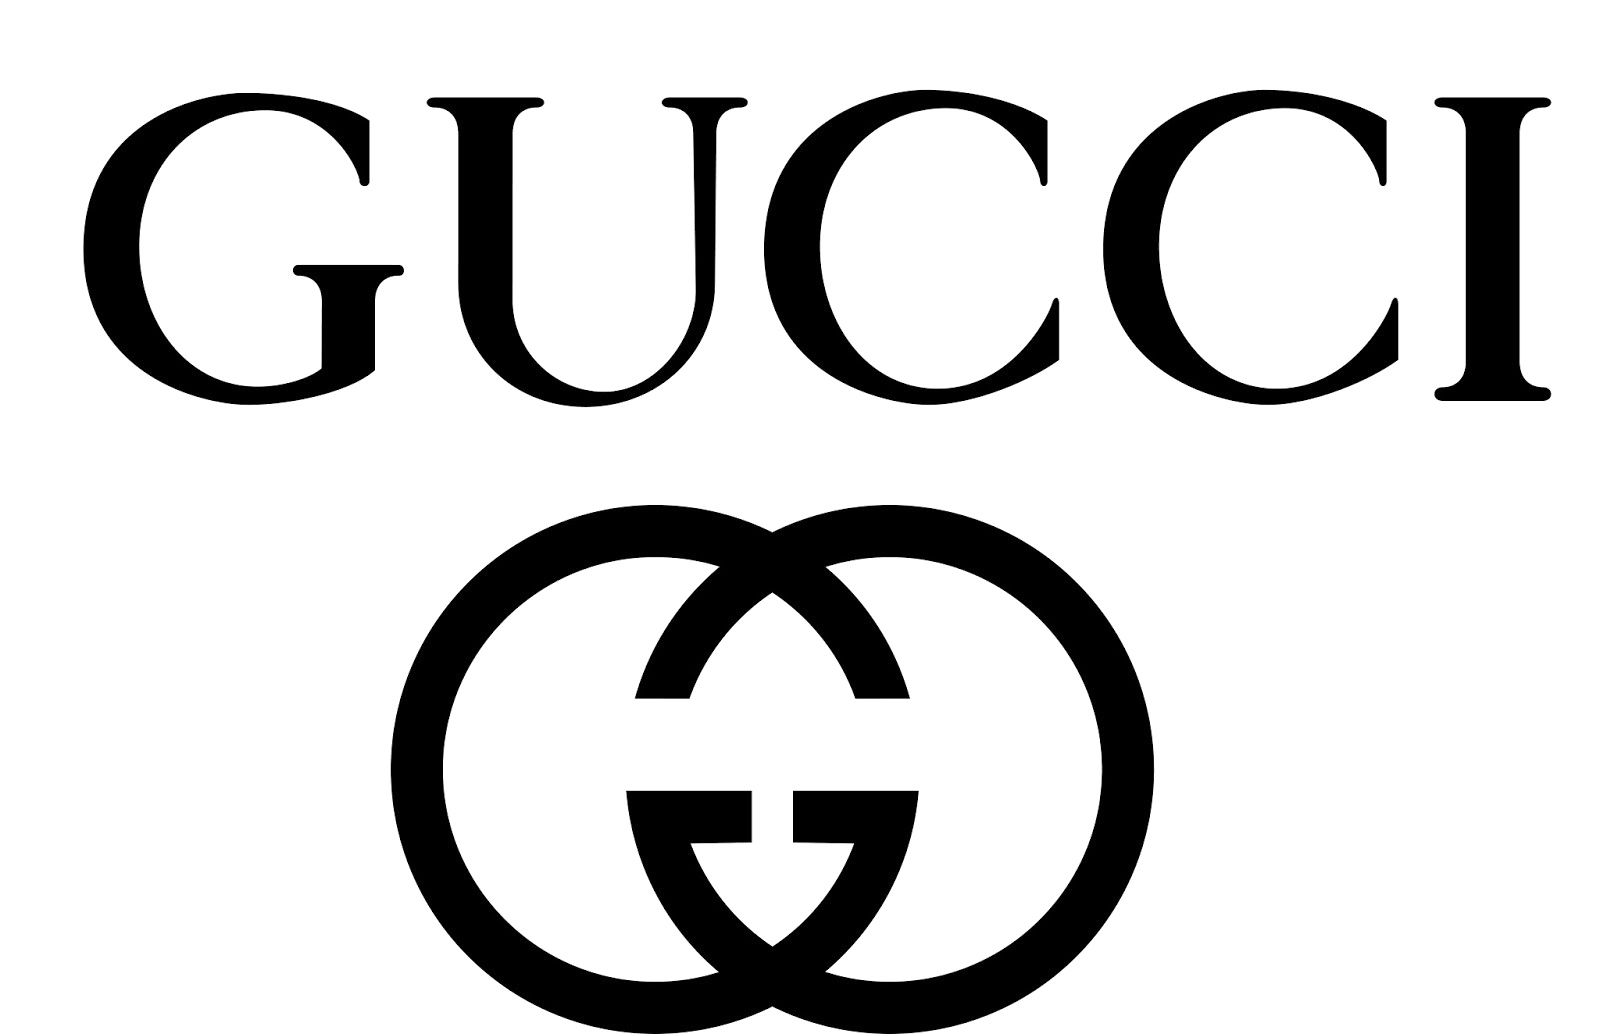 gucci logo transparent png